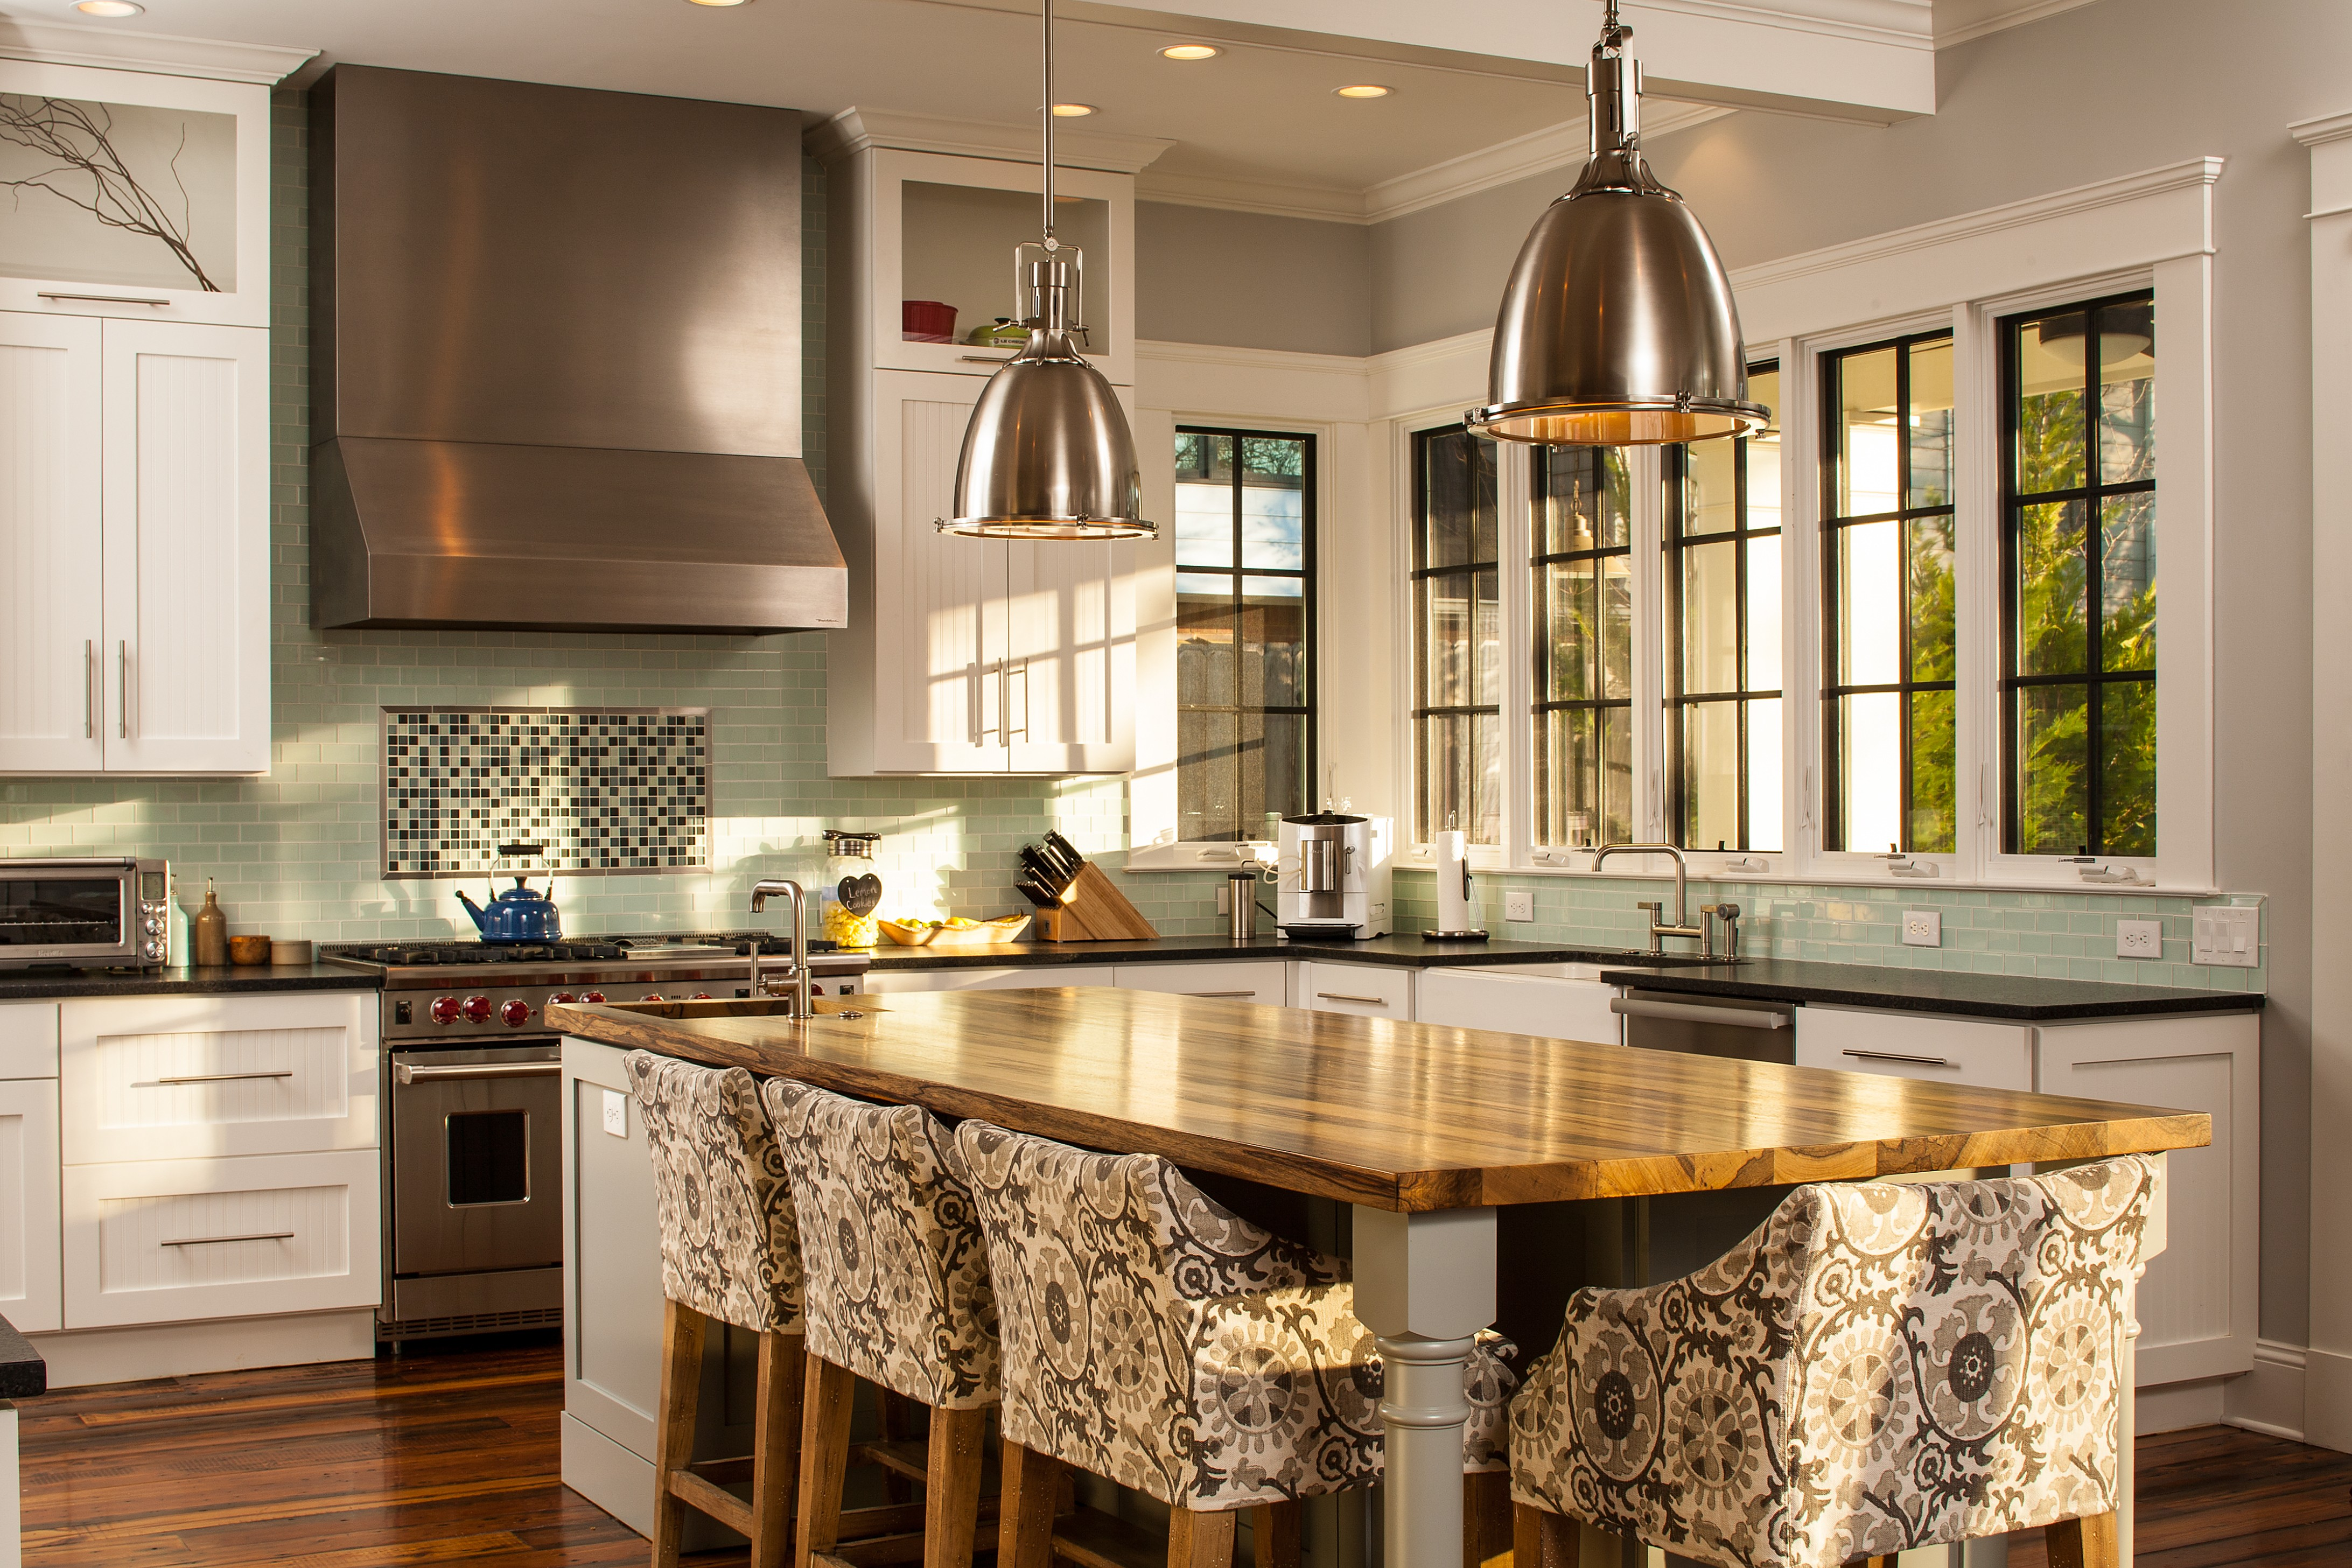 11 Gorgeous kitchens for people who love to cook - SheKnows